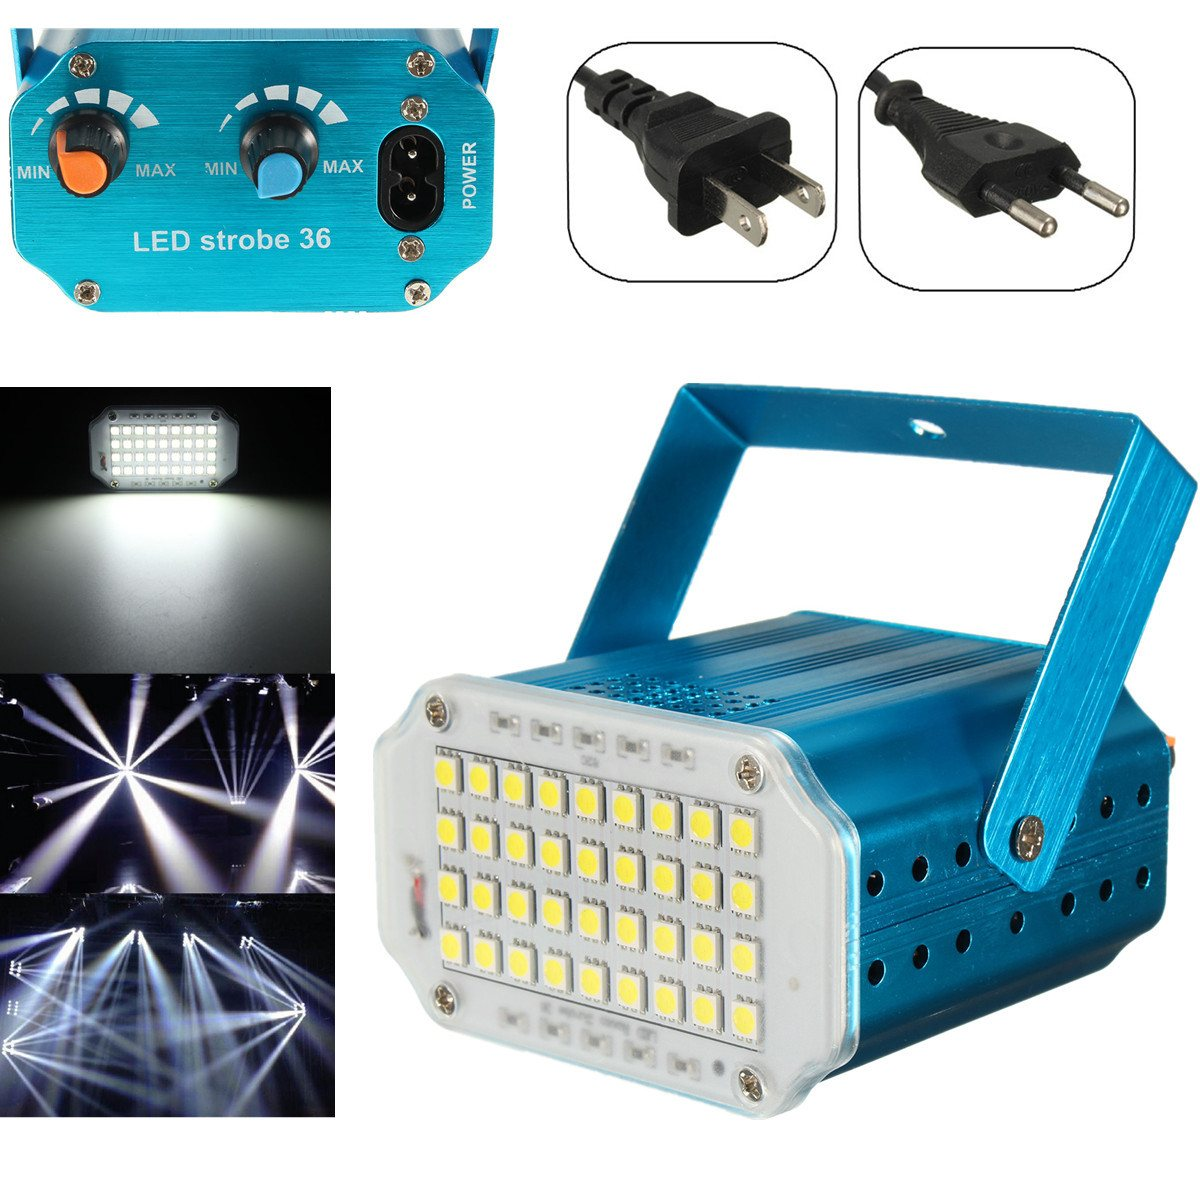 Adjustment LED RGB White Lighting Projector Laser Strobe Stage Light Effect DJ Disco Party Club KTV Night Lamp Bulb US EU Plug led rgb wall wash bar light dmx512 night club wedding party disco stage